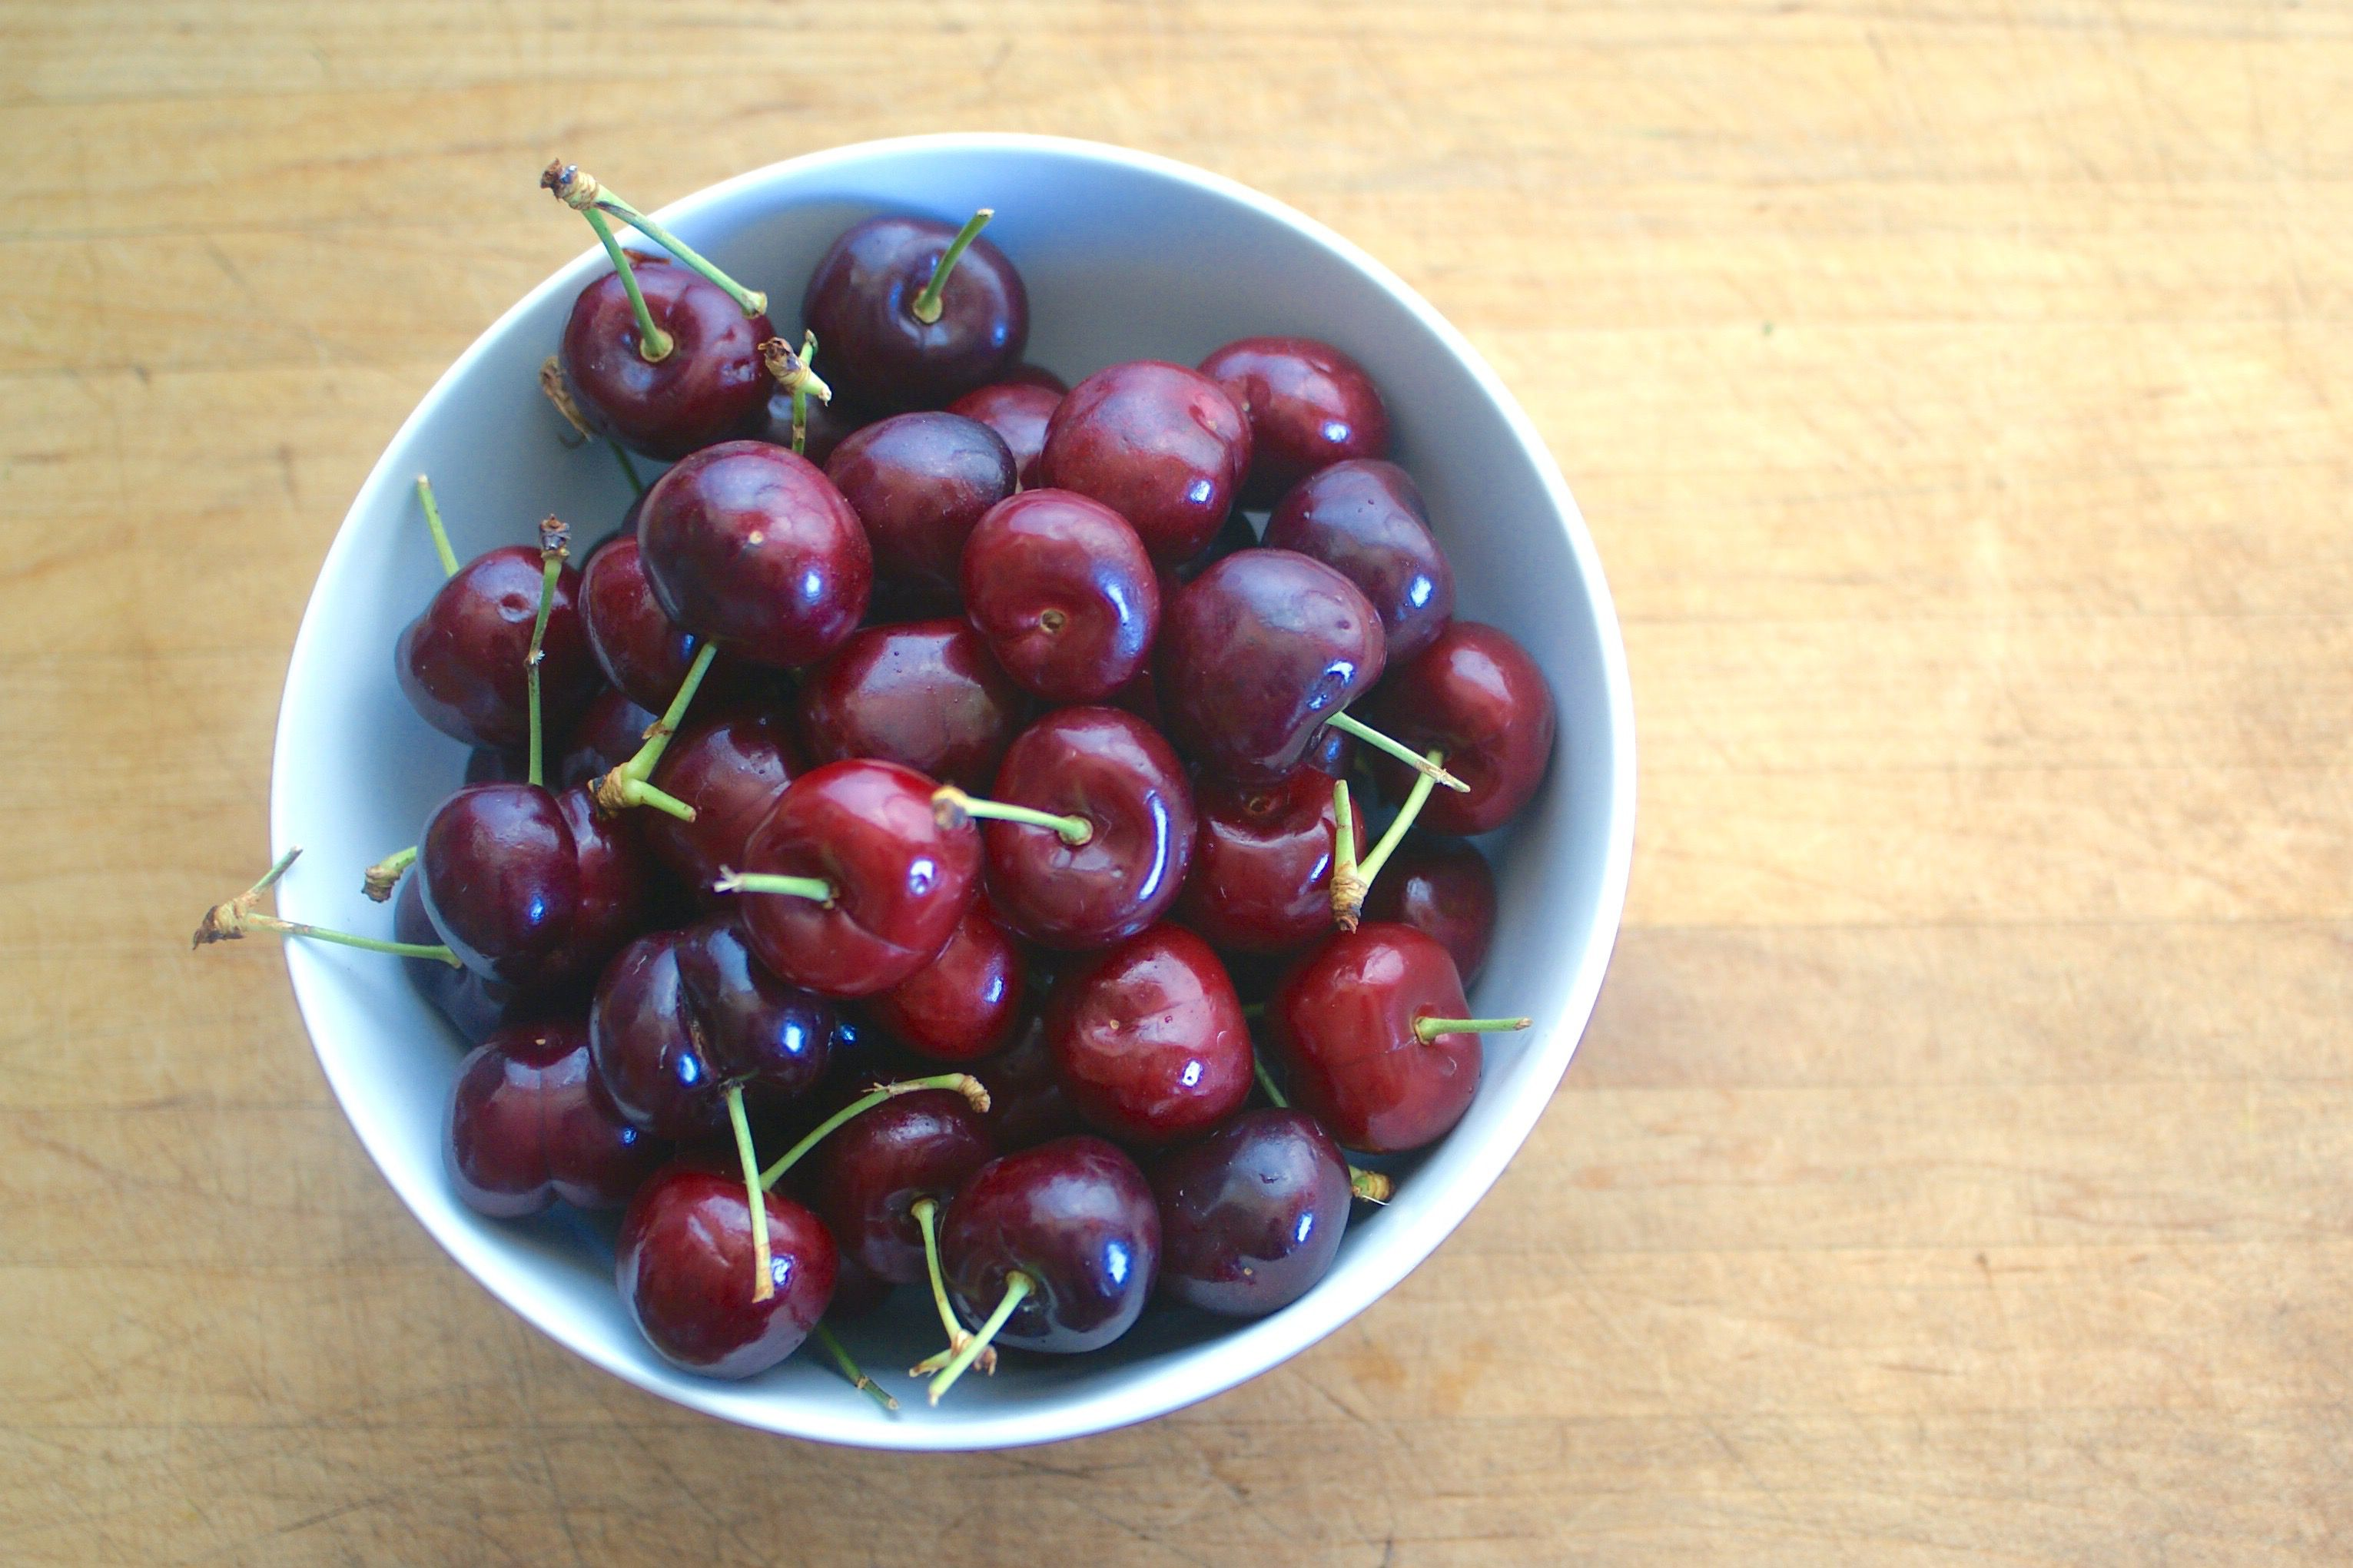 How To Remove Cherry Pits Without A Pitter